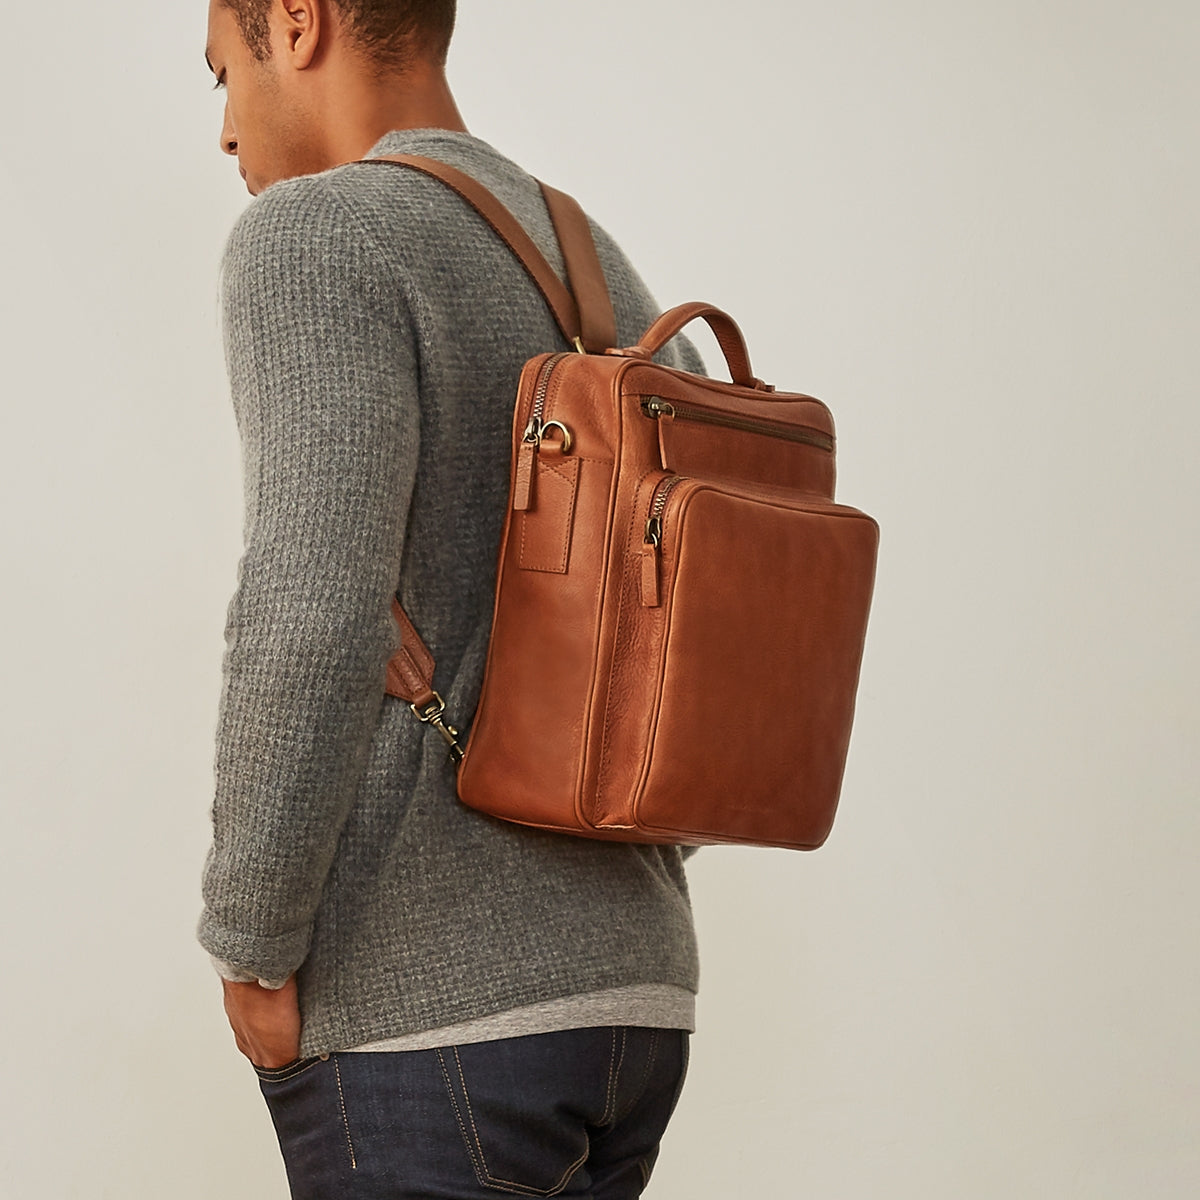 Image 8 of the 'SantinoL' Large Camel Leather Convertible Backpack Crossbody Bag For Men